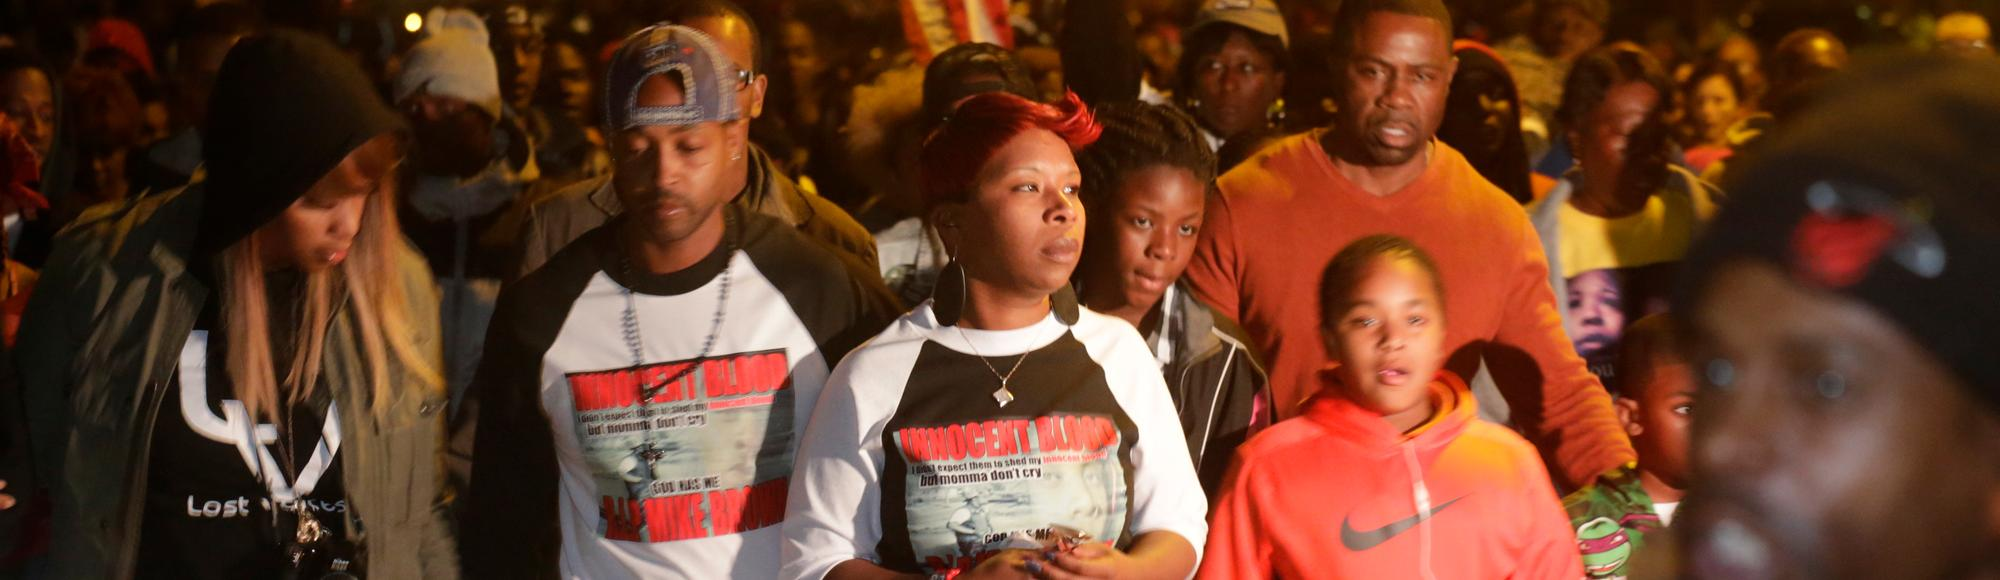 Michael Brown's Mom Is Taking Her Son's Case to the UN in Geneva